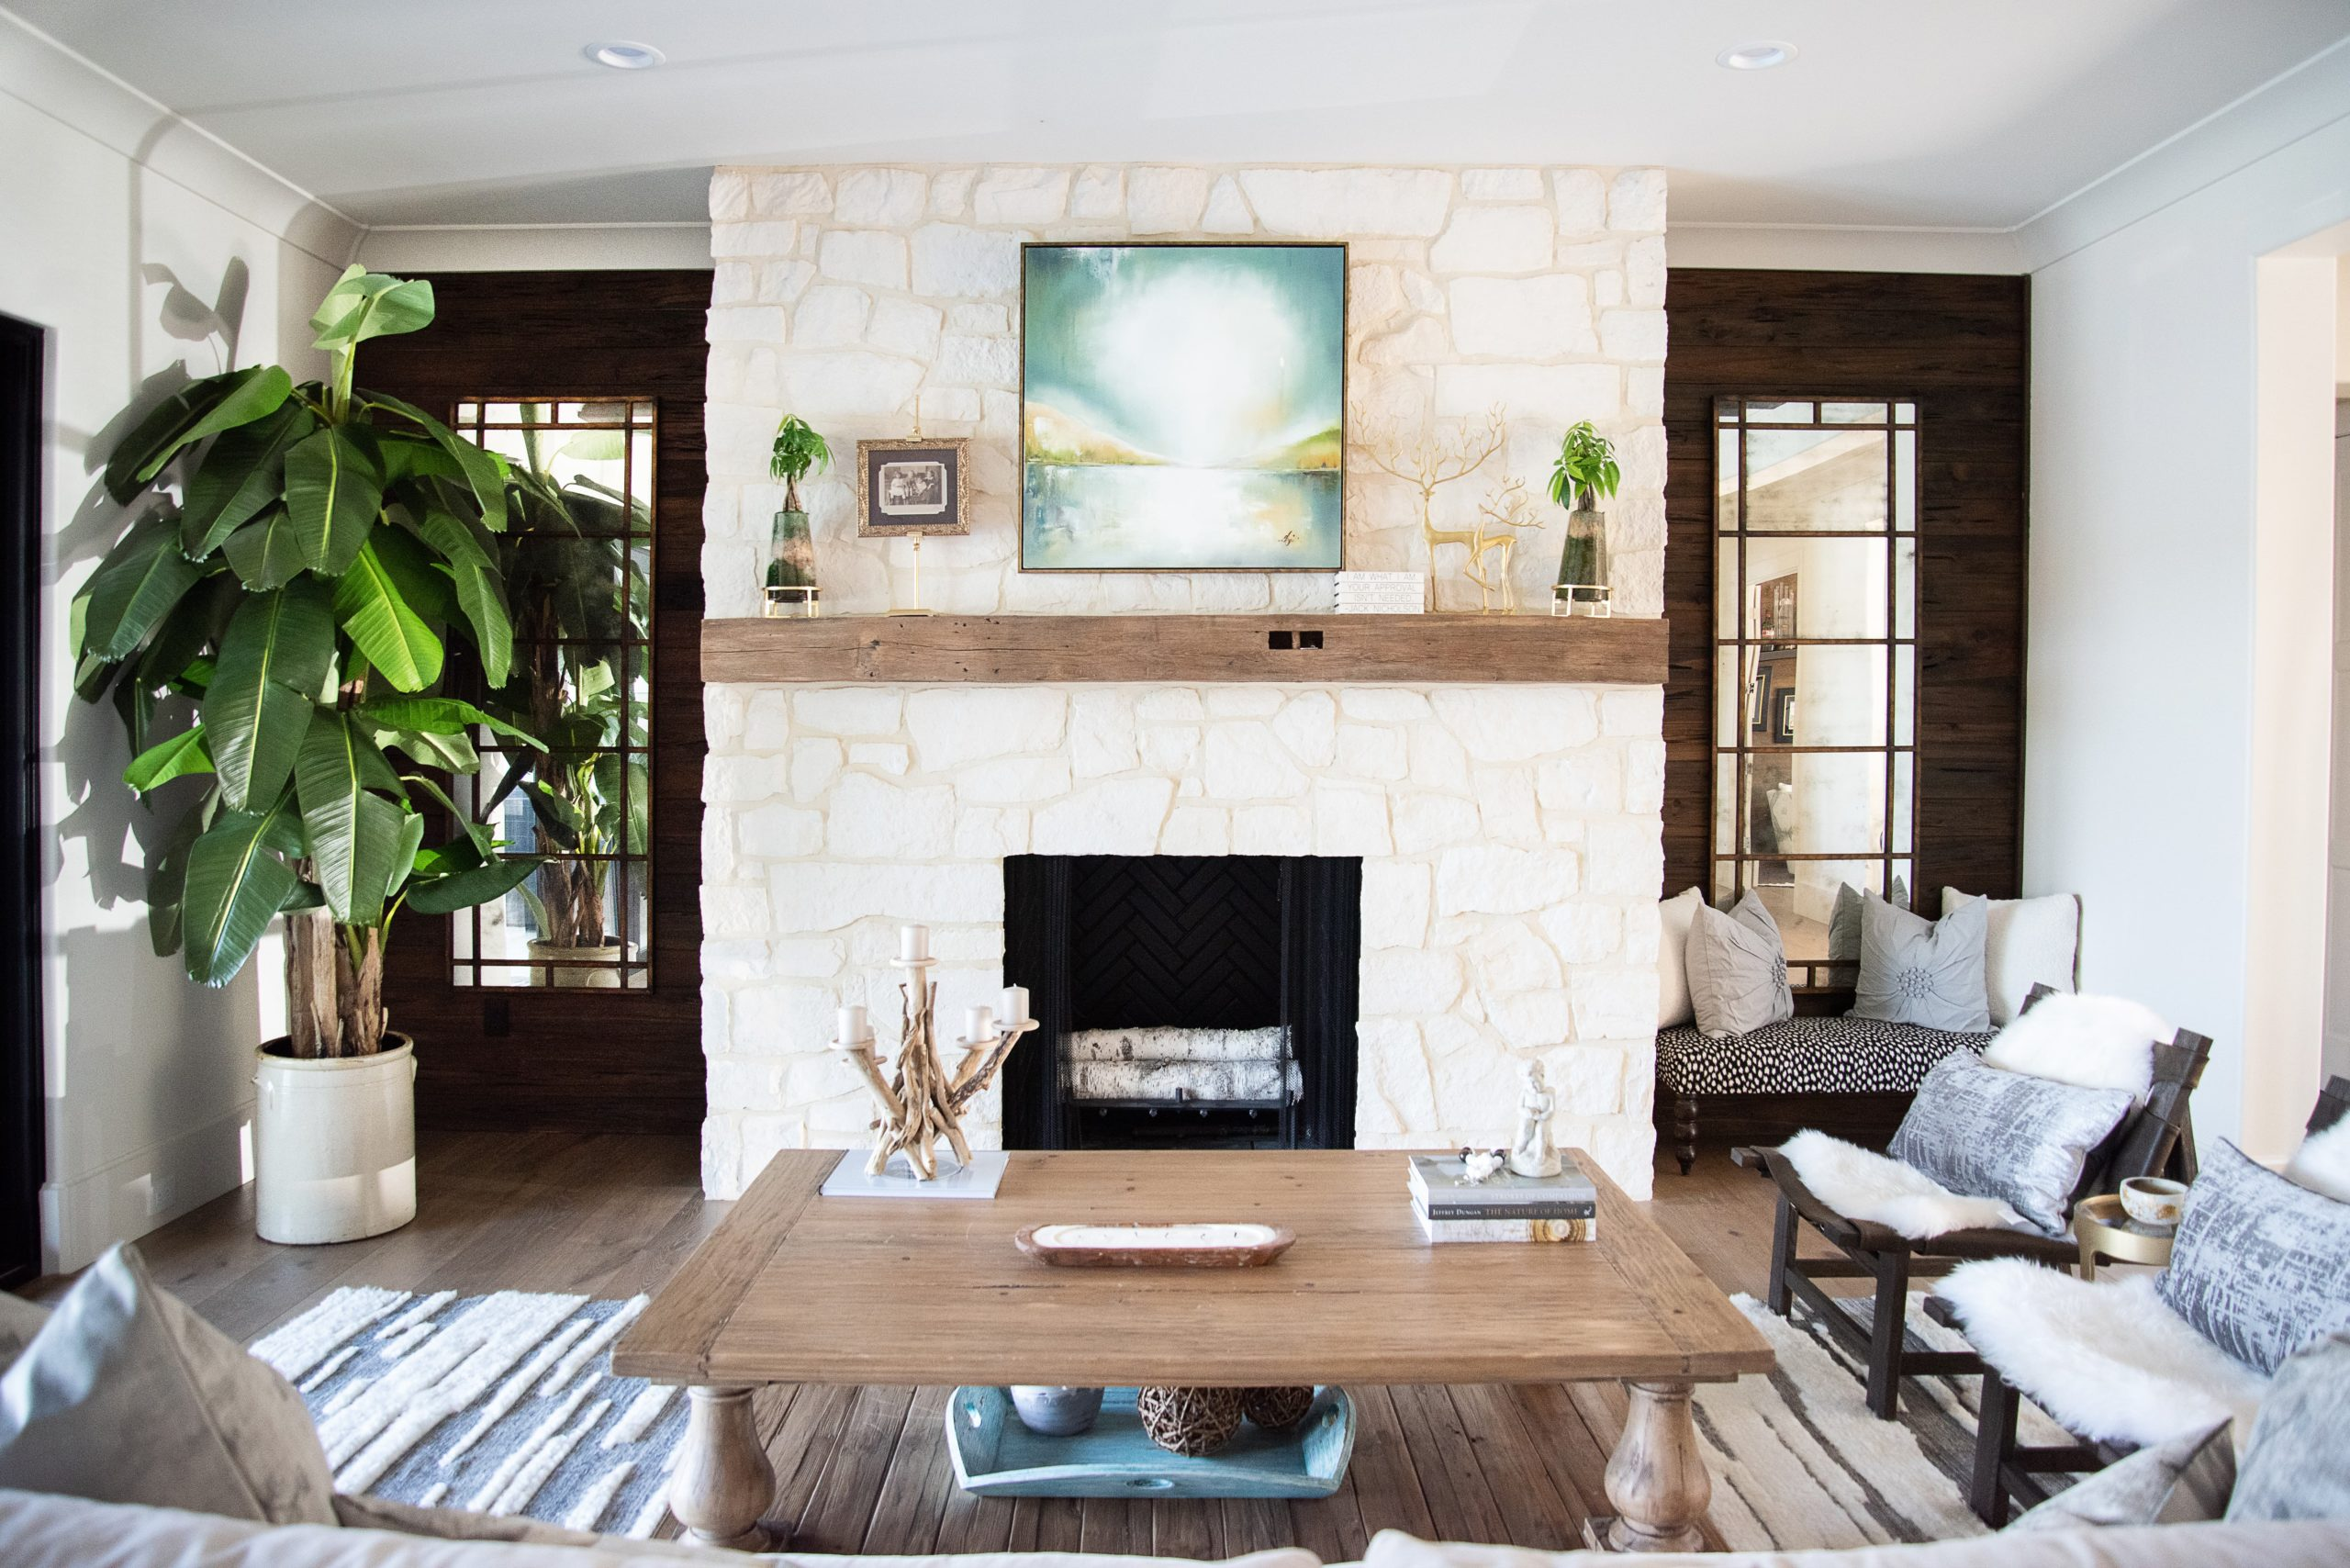 Southend Reclaimed - Antique White Oak Solid Mantel 3 Pecky Cypress Wall Paneling